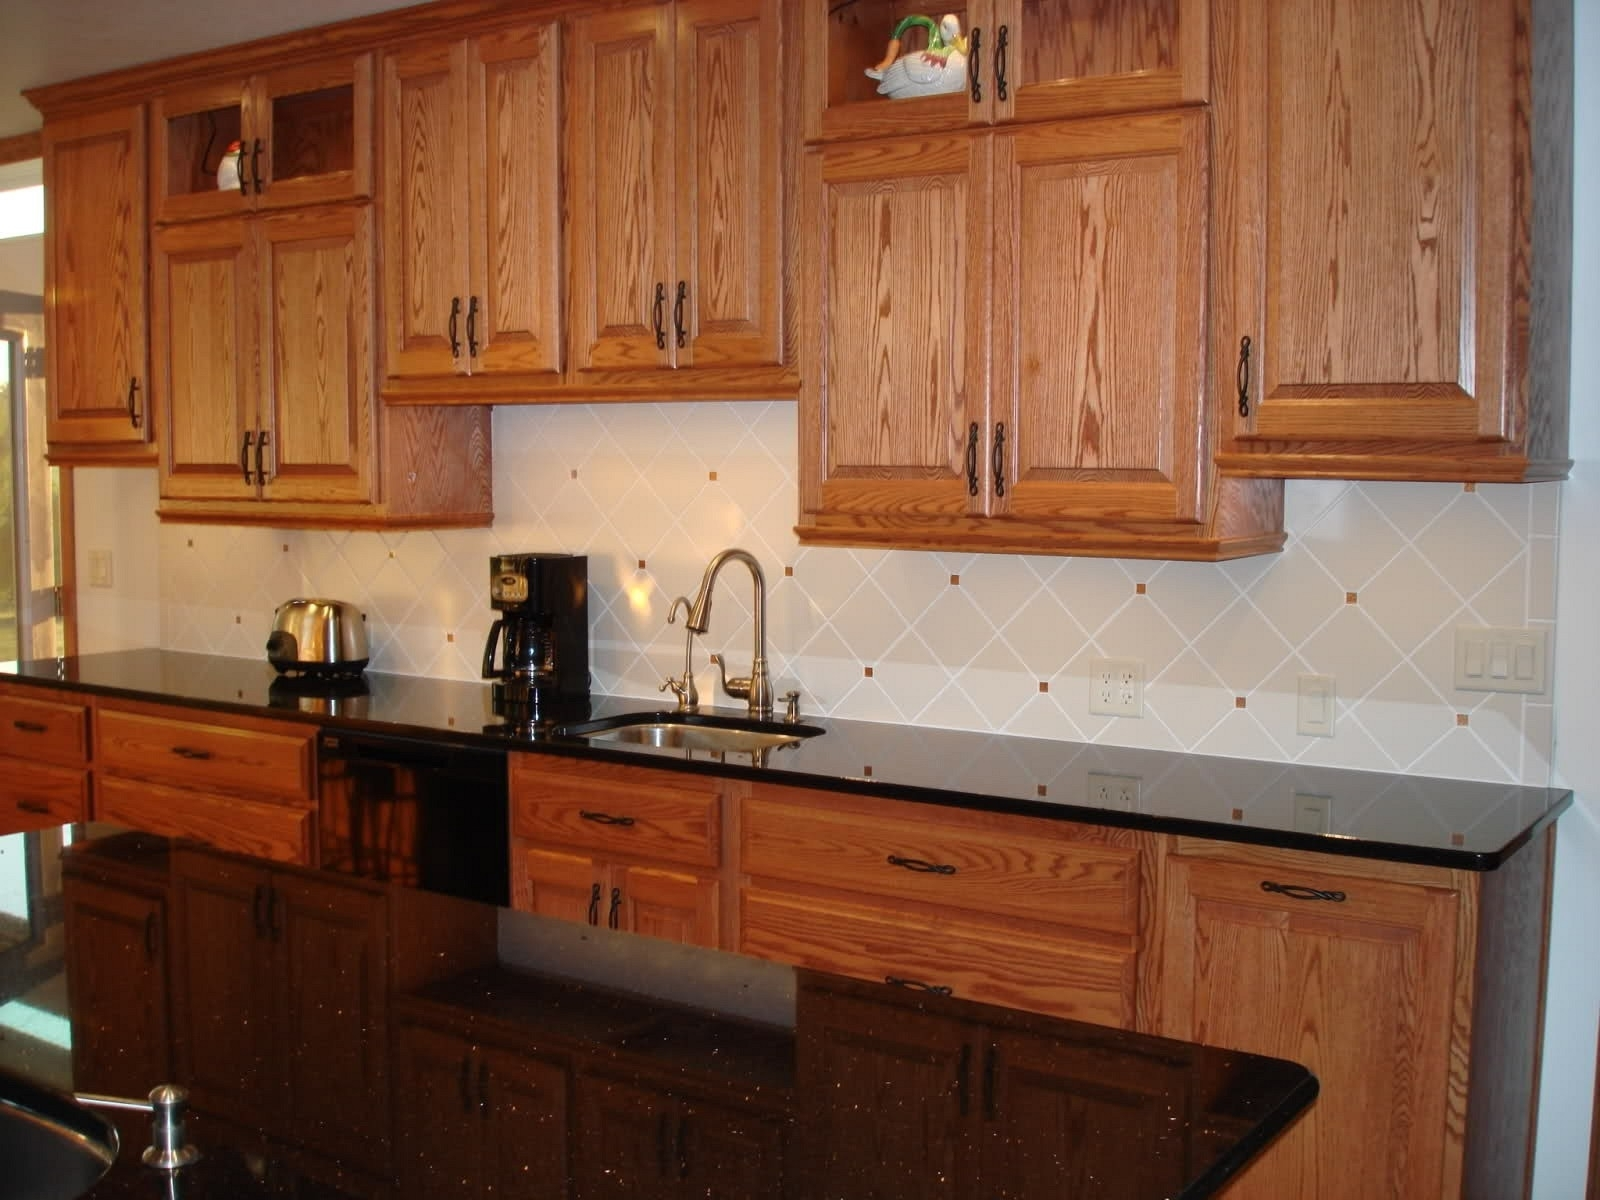 Black Pro S Honed Black Granite Countertops Pros And Cons Madison Art Center